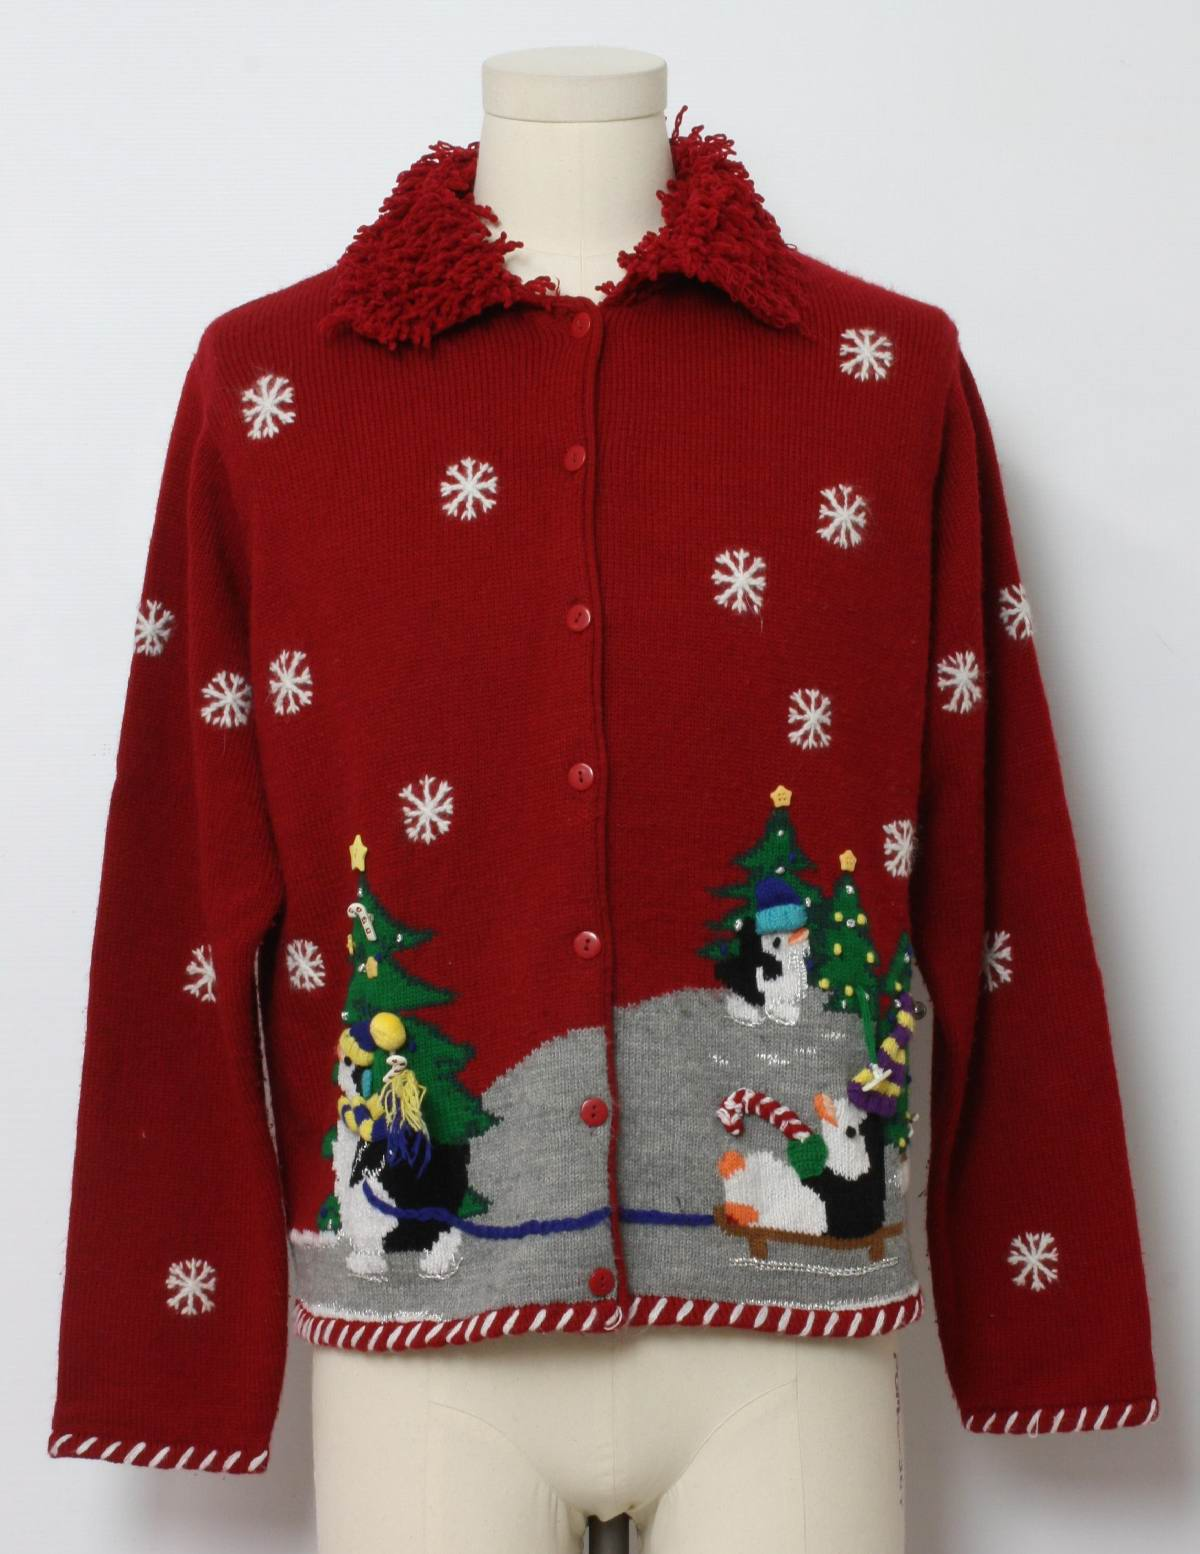 80s style -Karen Scott- Womens Red background cotton ramie blend button front longsleeve Ugly Christmas Sweater, foldover collar with Christmas trees with penguins ice skating. One has a jingle bell from his hat.Candy cane buttons. Snowflakes. Plain red on back. Loose button could be easily repaired, otherwise in good condition